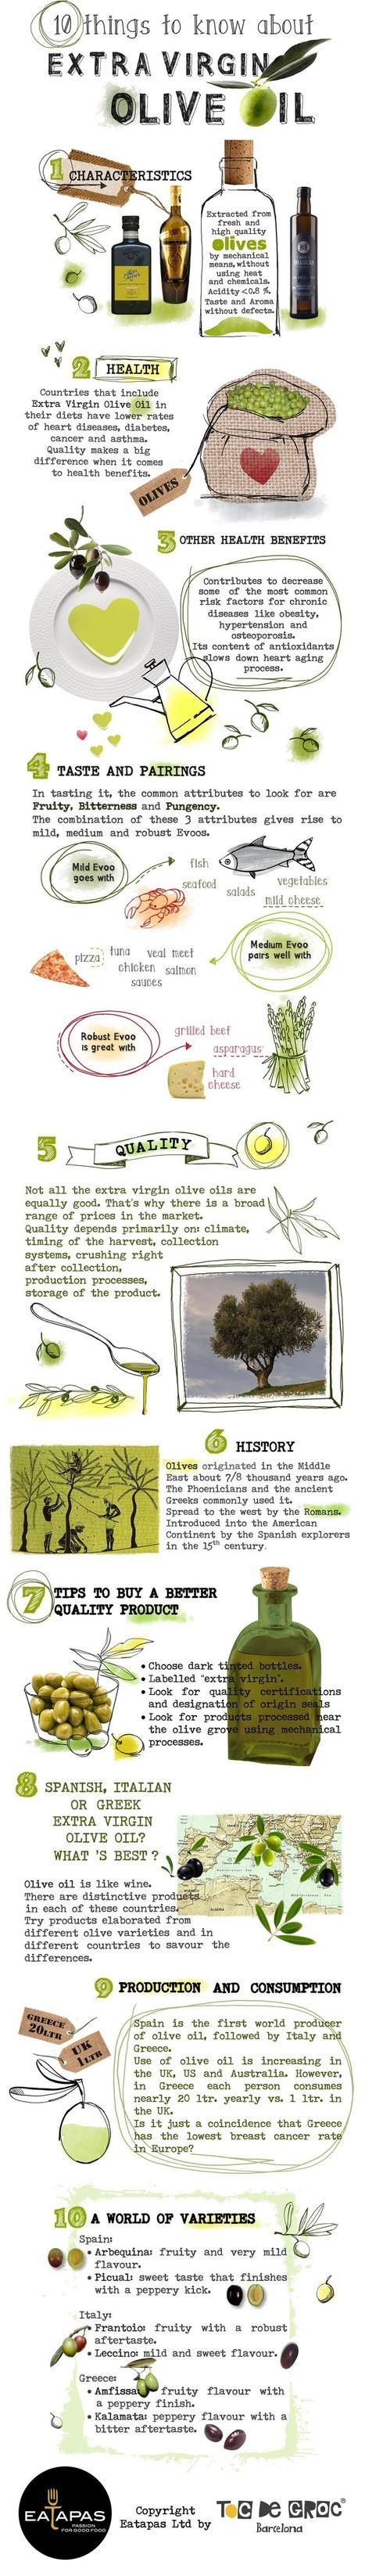 10 Surprising facts about Extra Virgin Olive Oil | All Infographics | Scoop.it